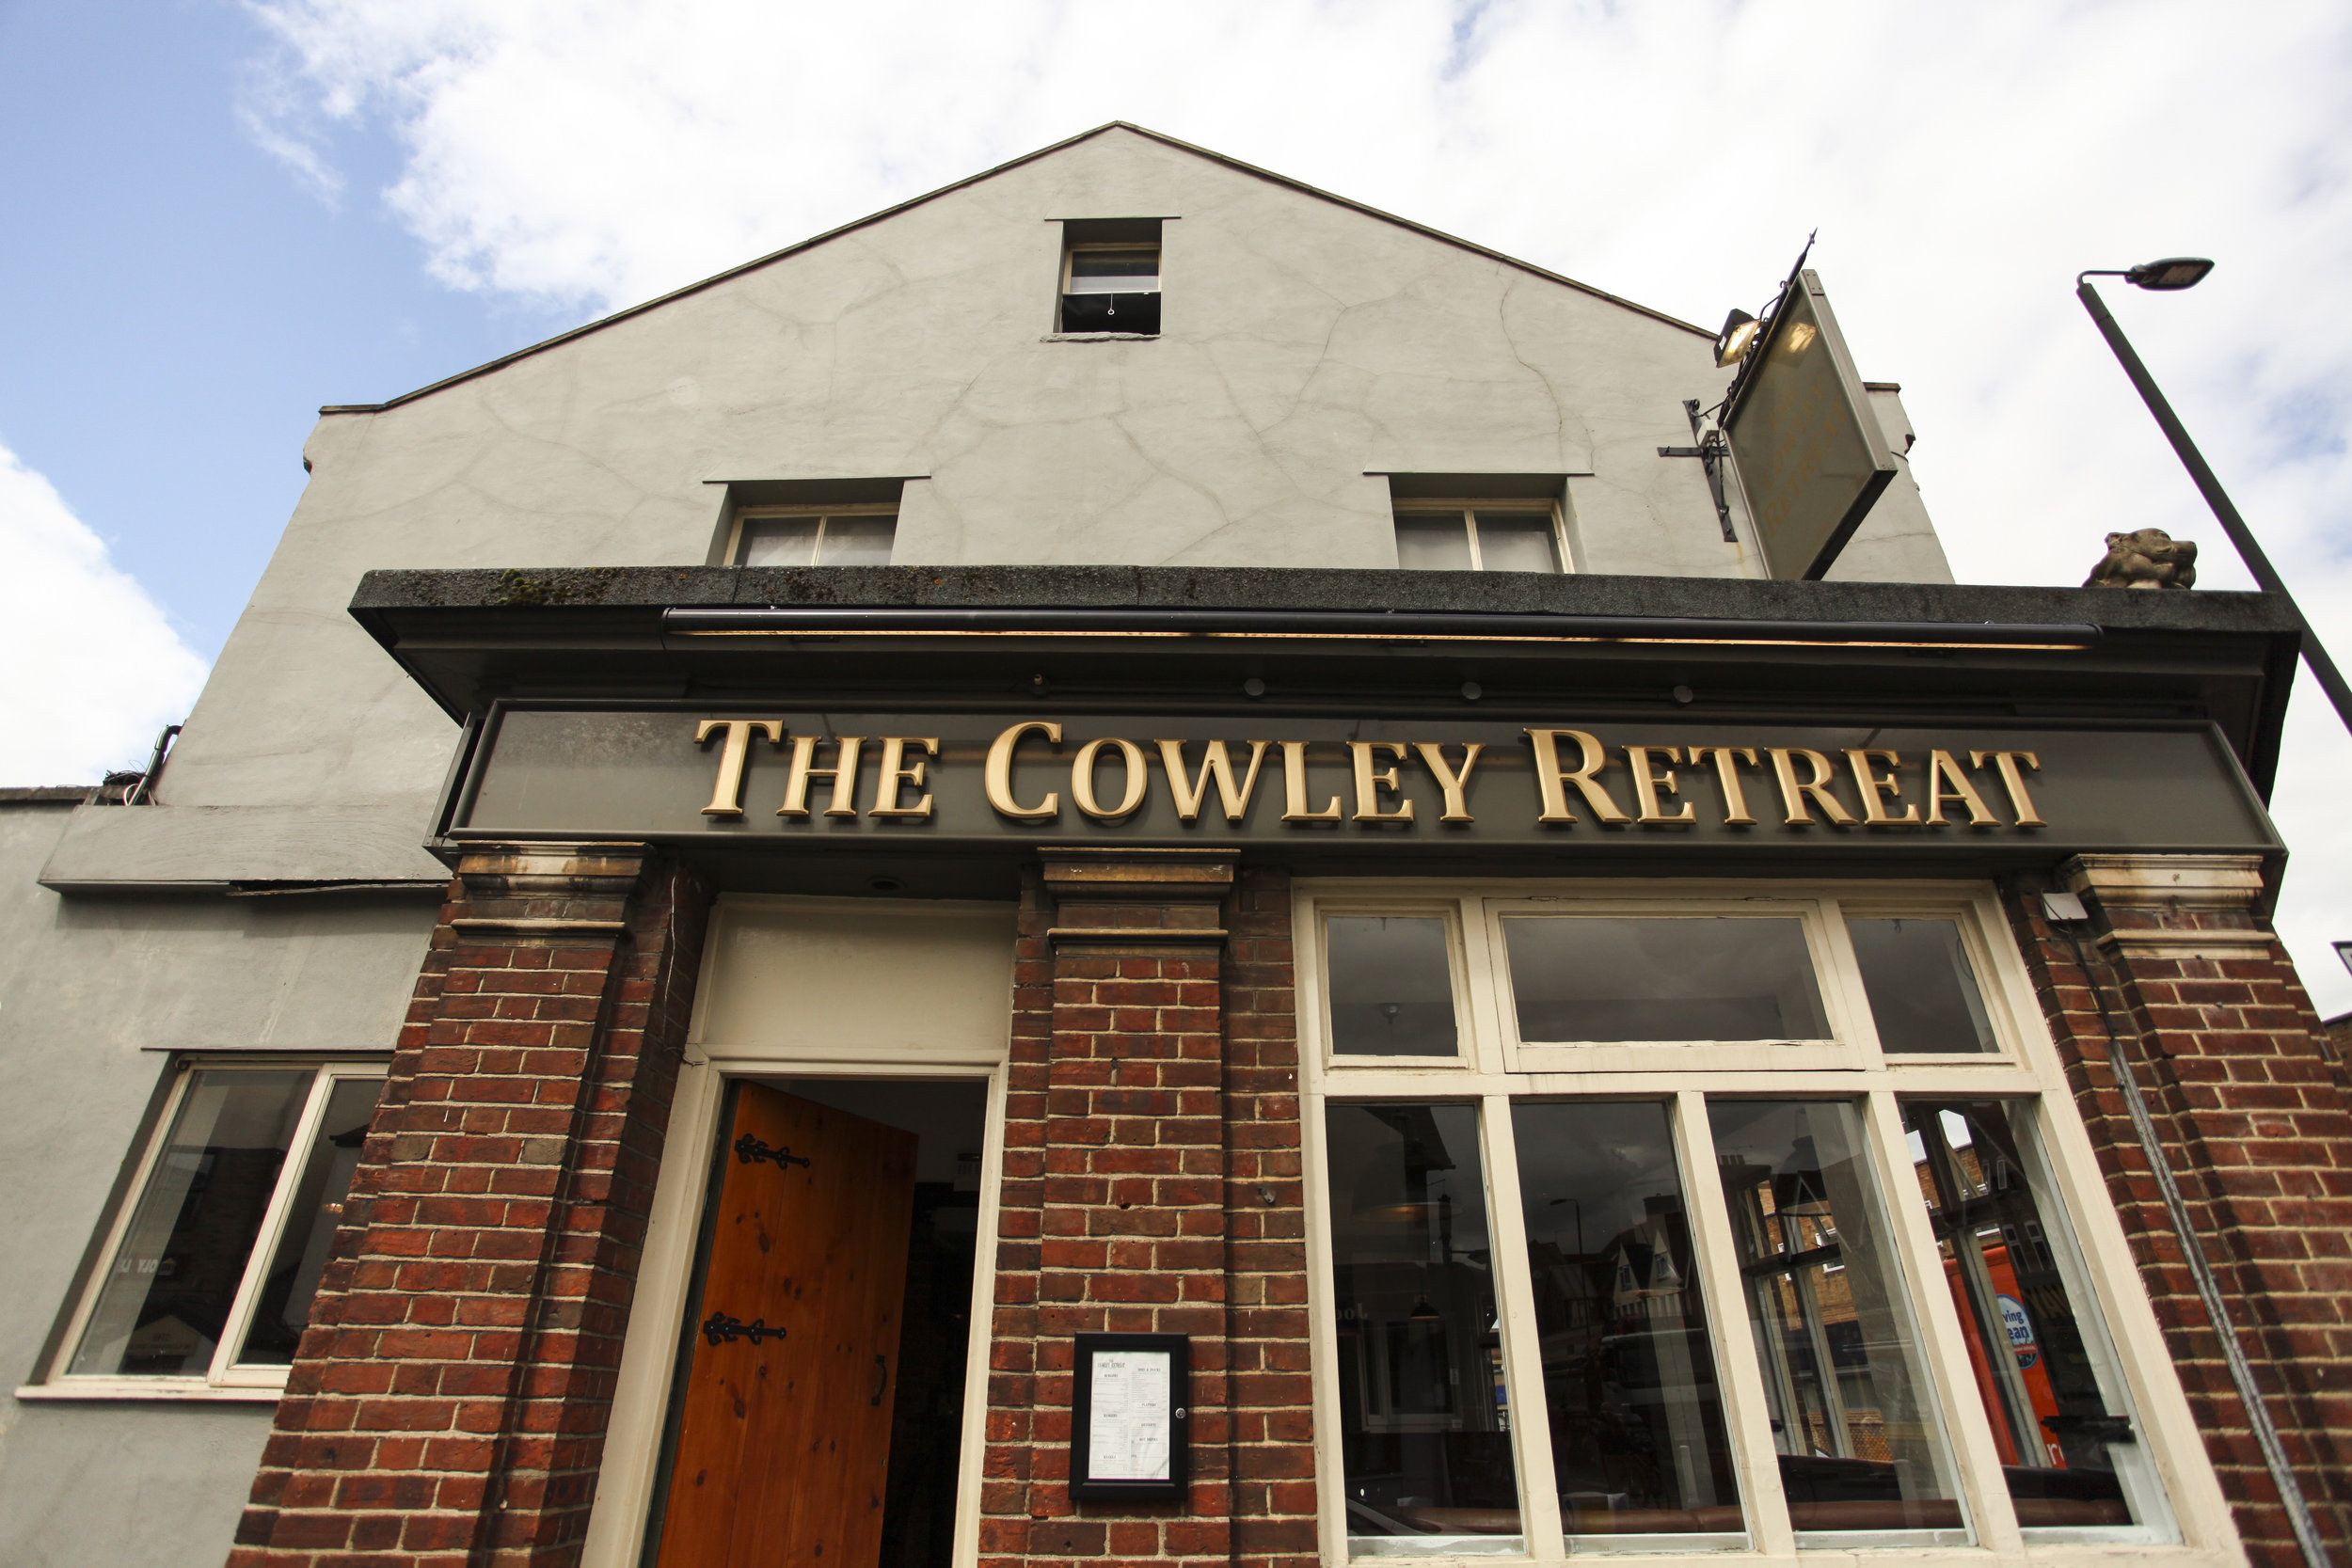 The Cowley Retreat in East Oxford